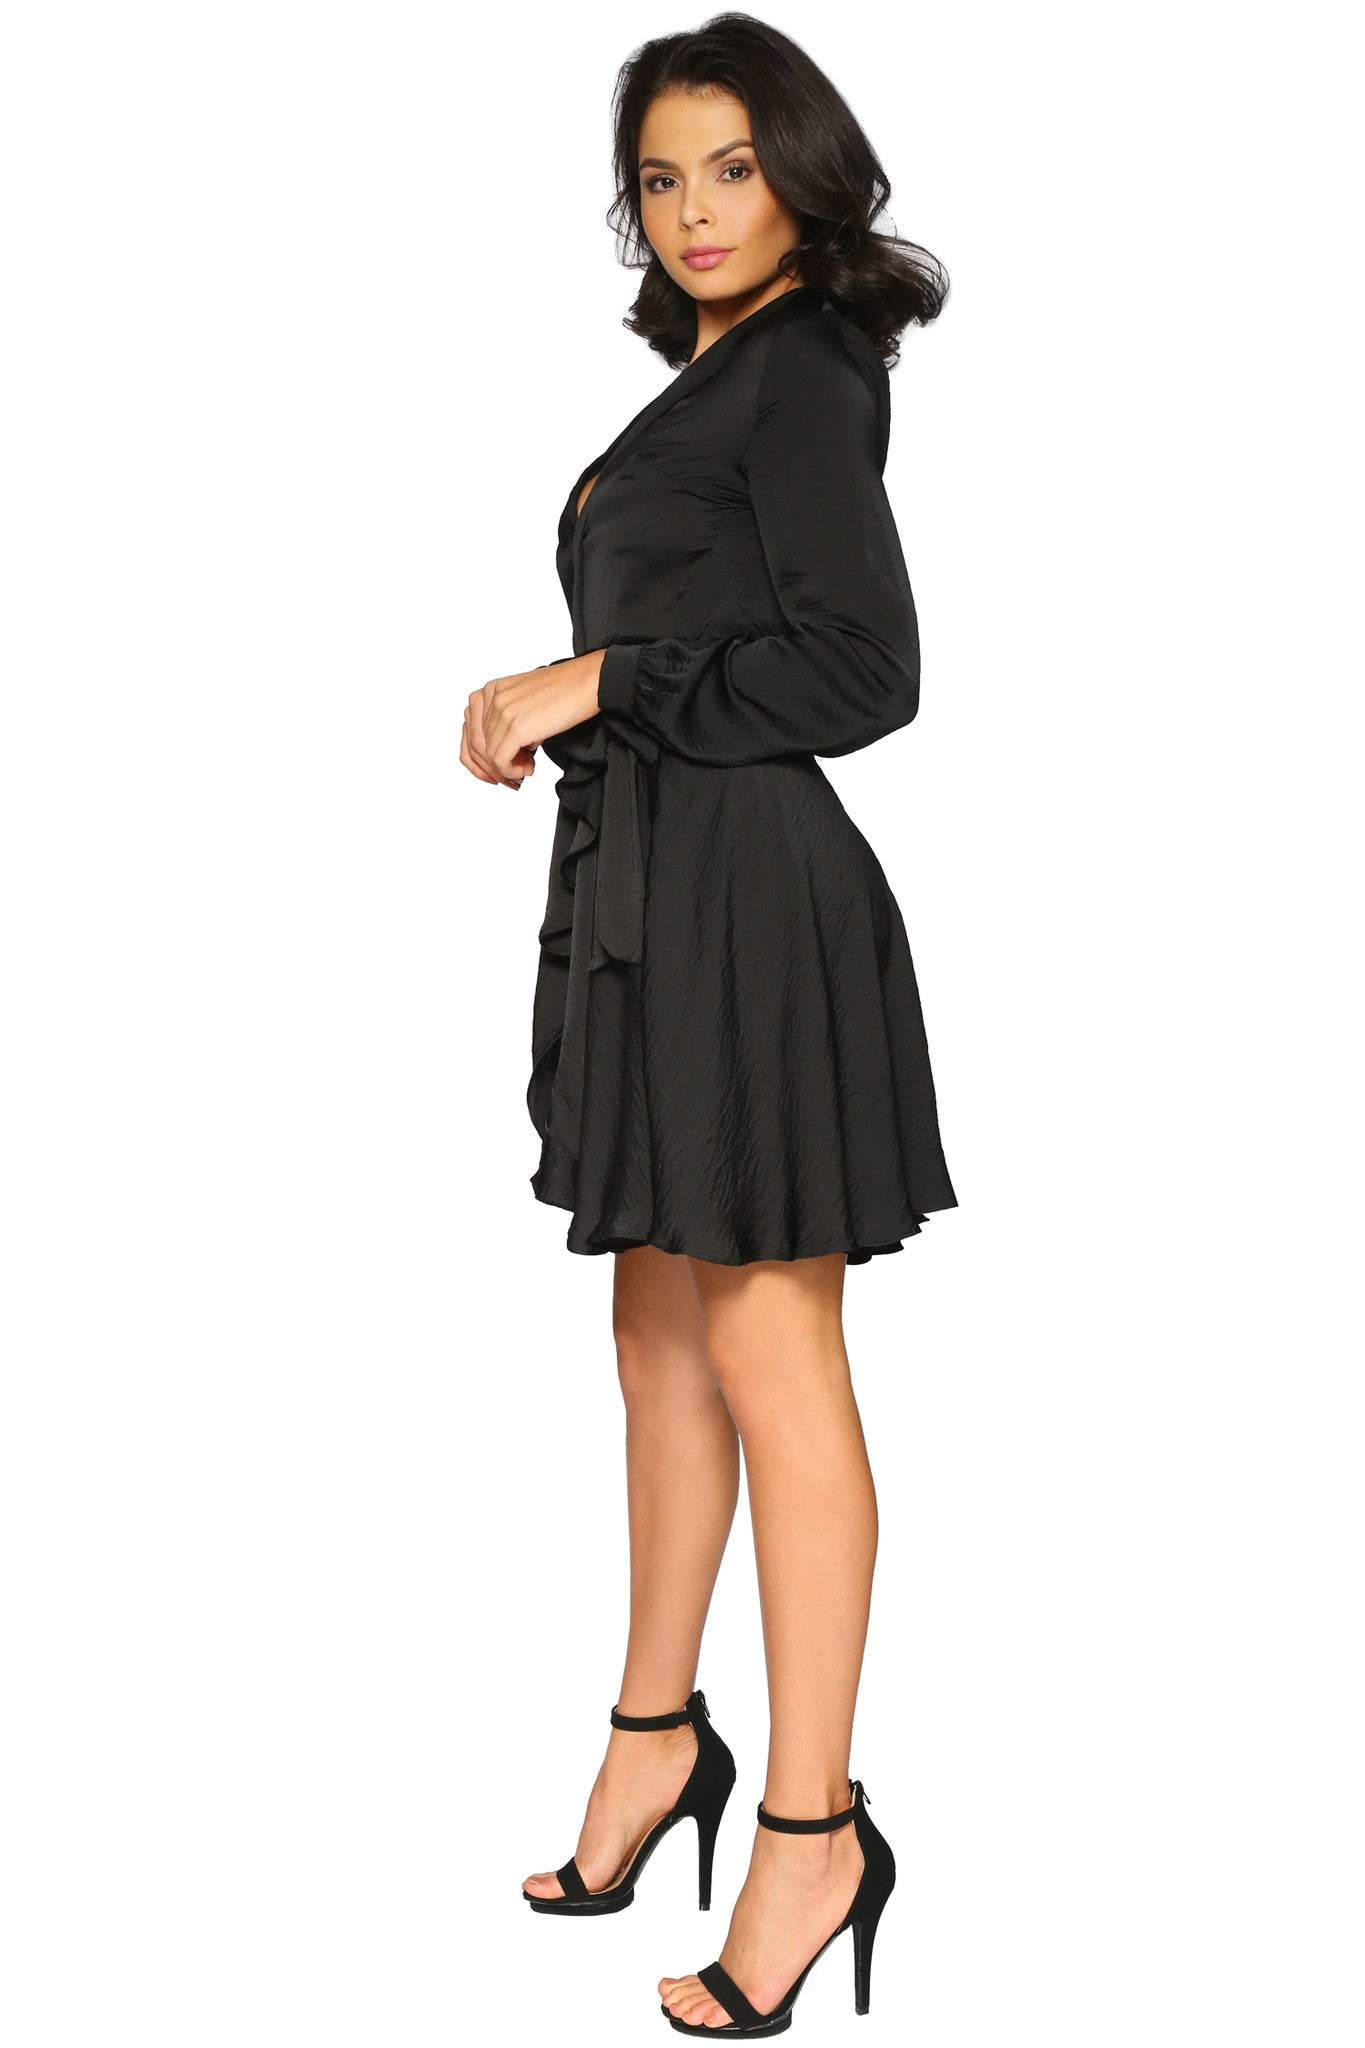 MARI DRESS BLACK GLAM ENVY SIDE PROFILE